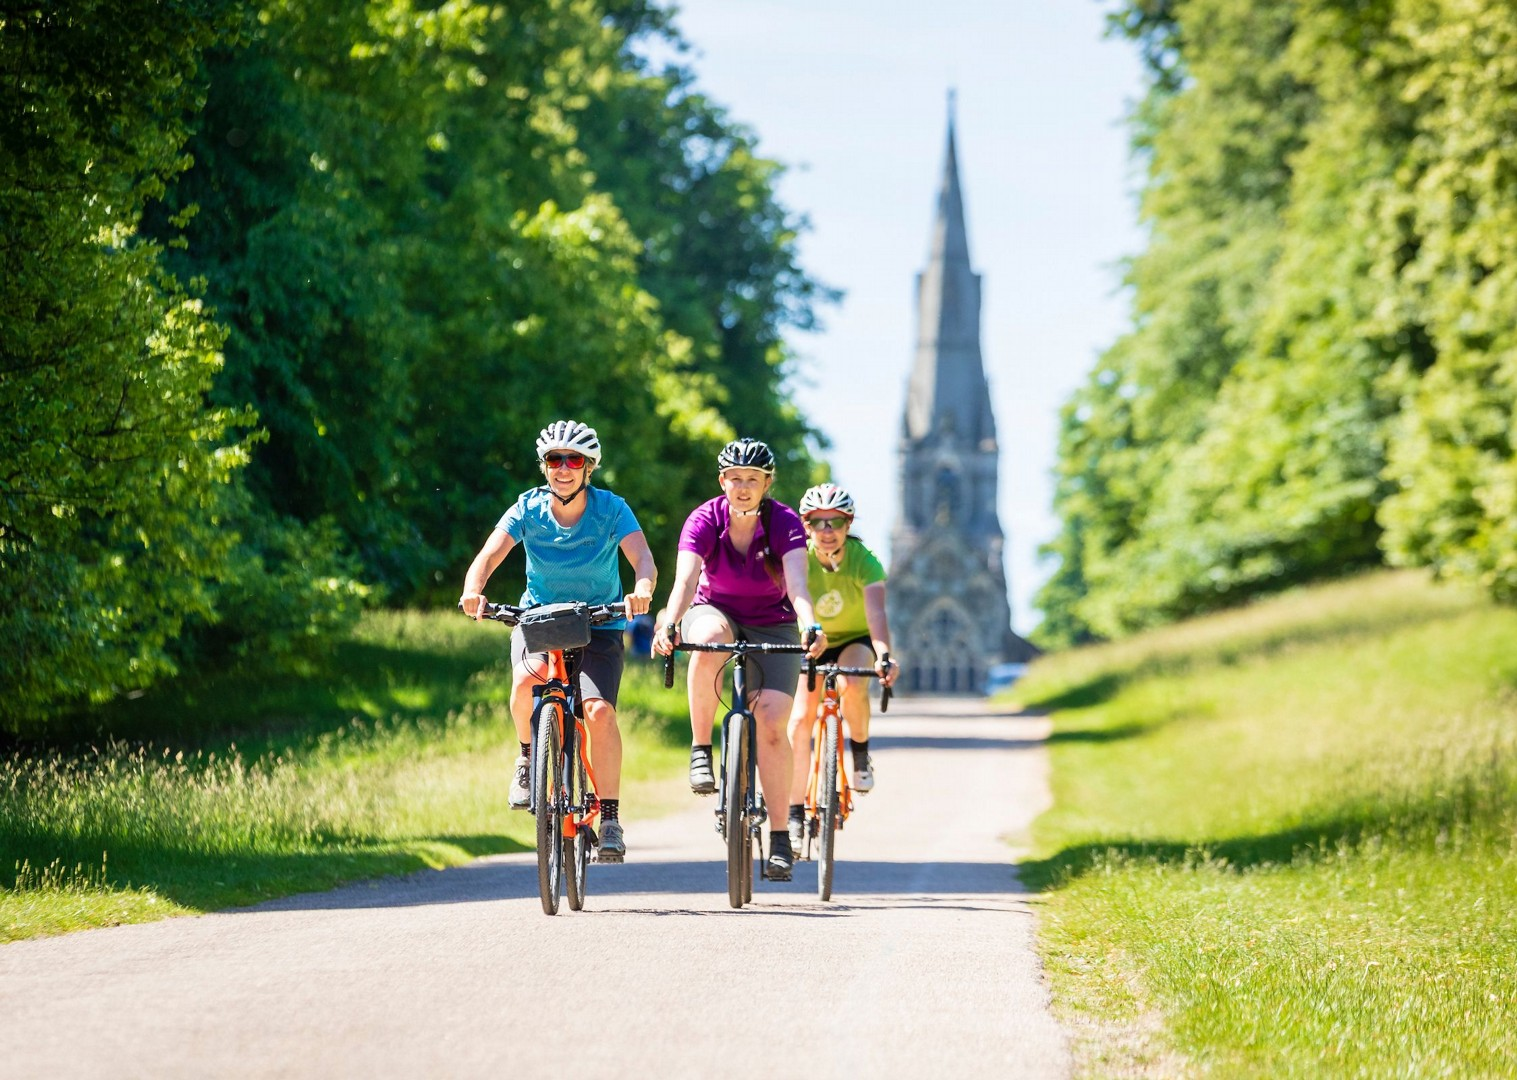 british-landmark-sights-on-a-bike-holiday-5-days.jpg - UK - Way of the Roses 5 Days Cycling - Self-Guided Leisure Cycling Holiday - Leisure Cycling